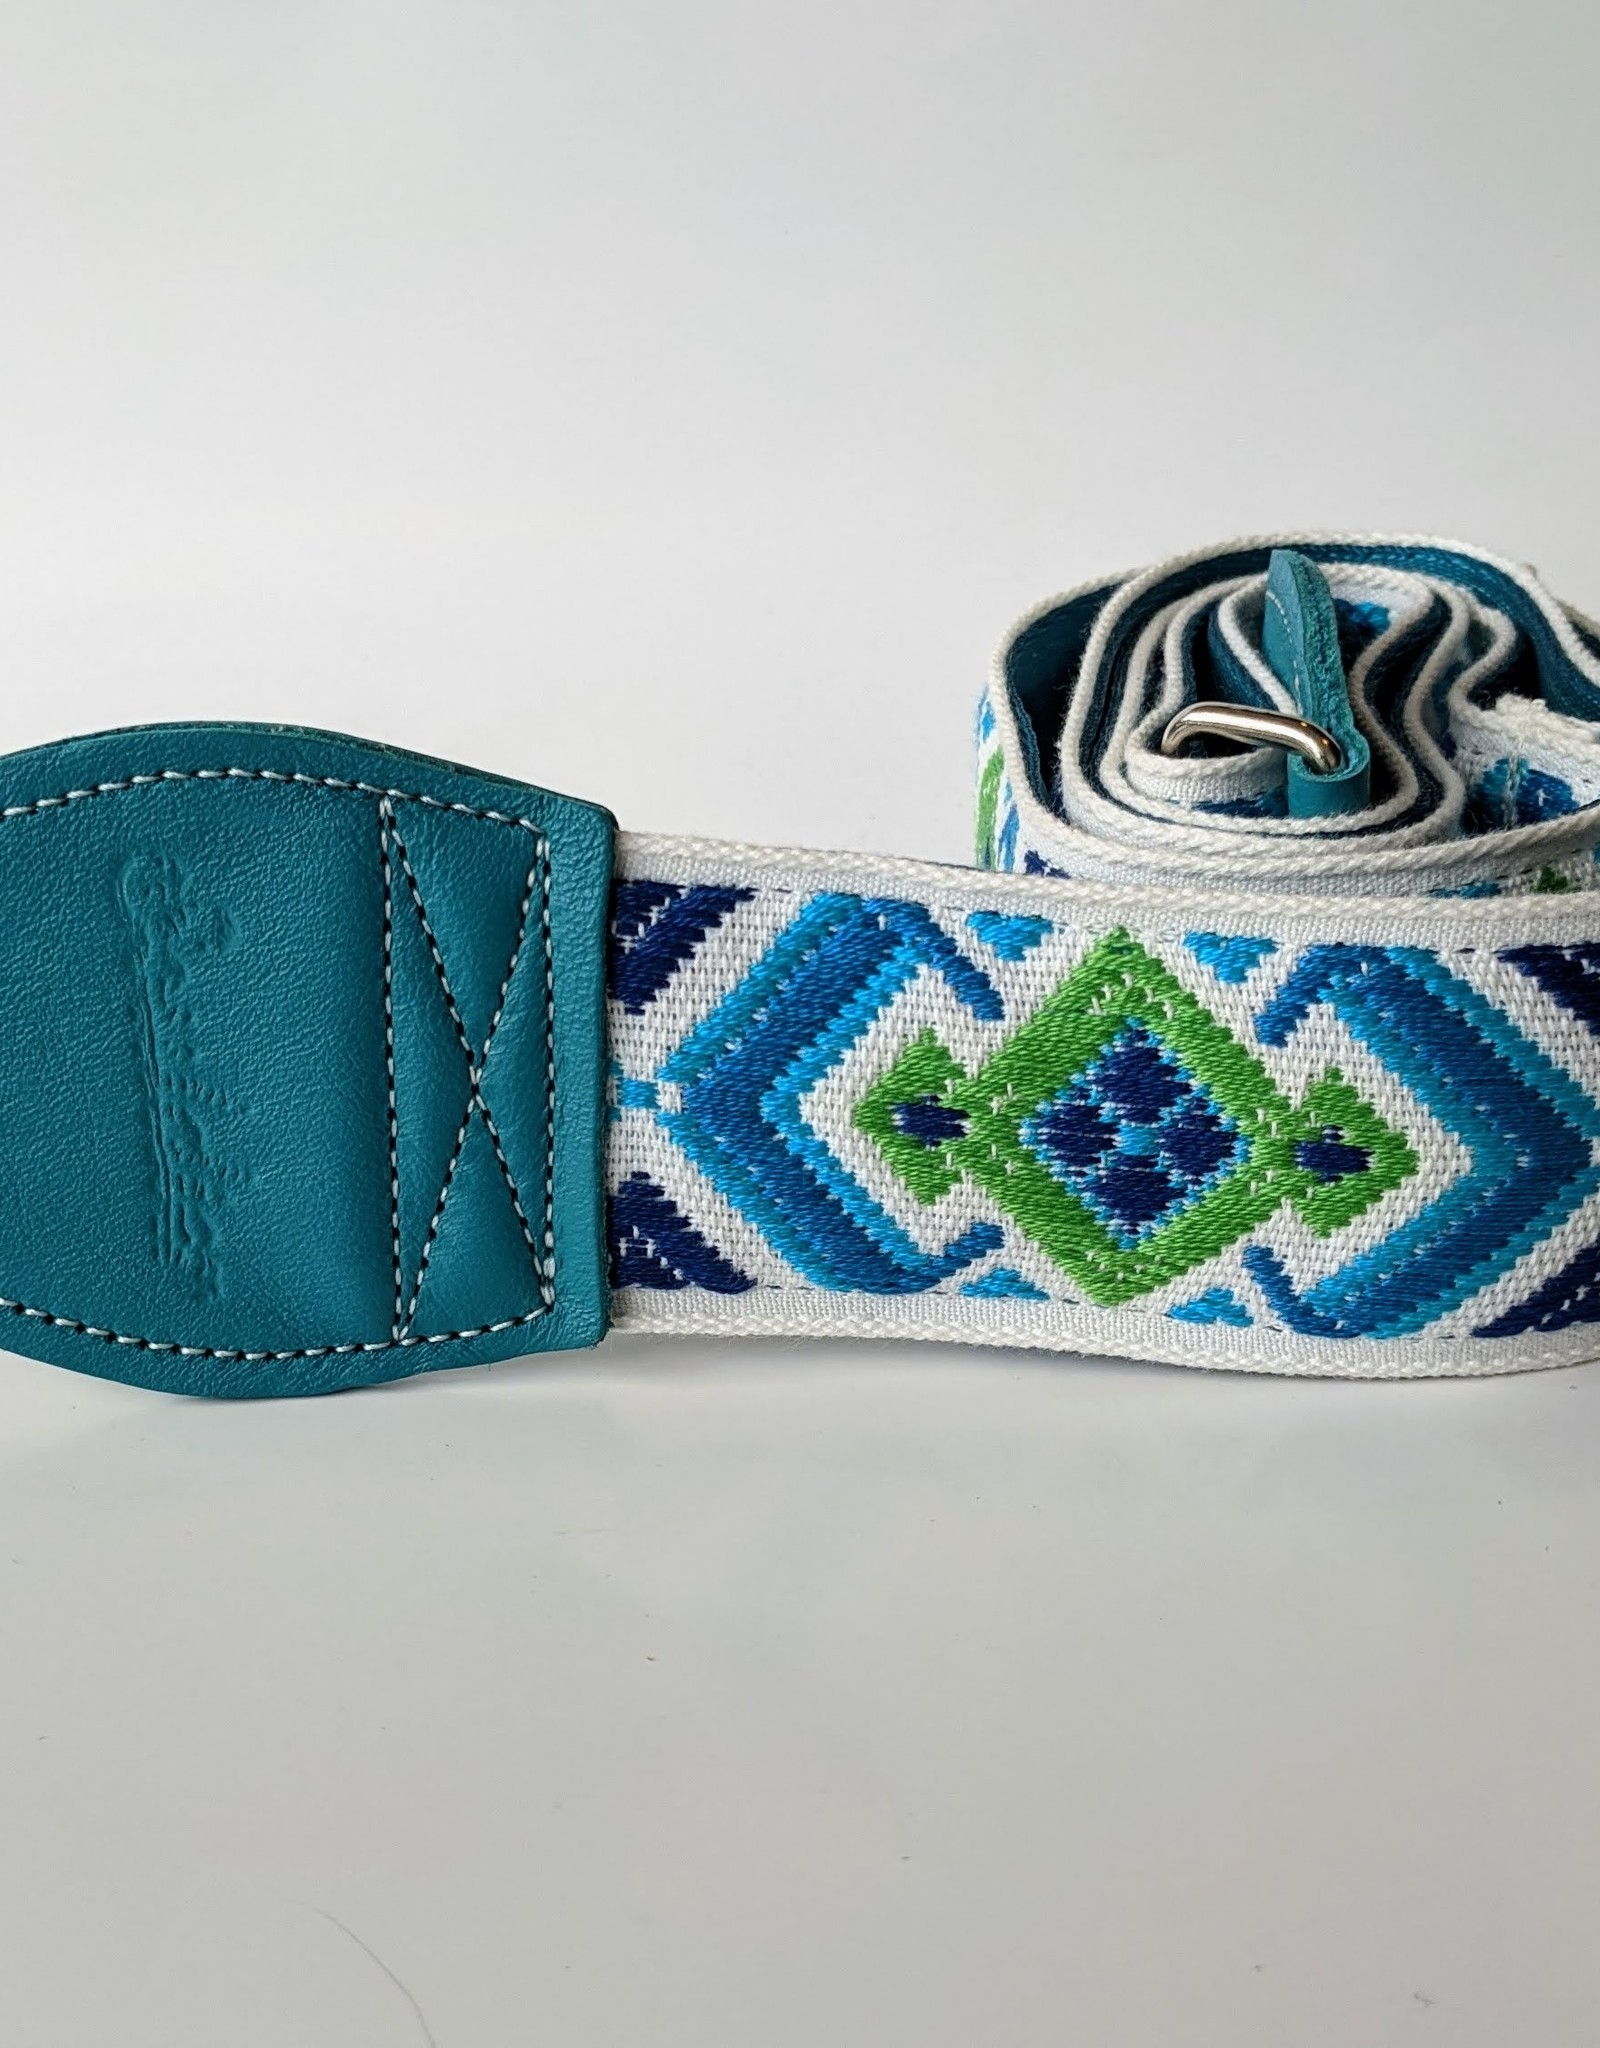 Souldier Souldier Diamante White/Green/Blue, Vintage Fabric Guitar Strap